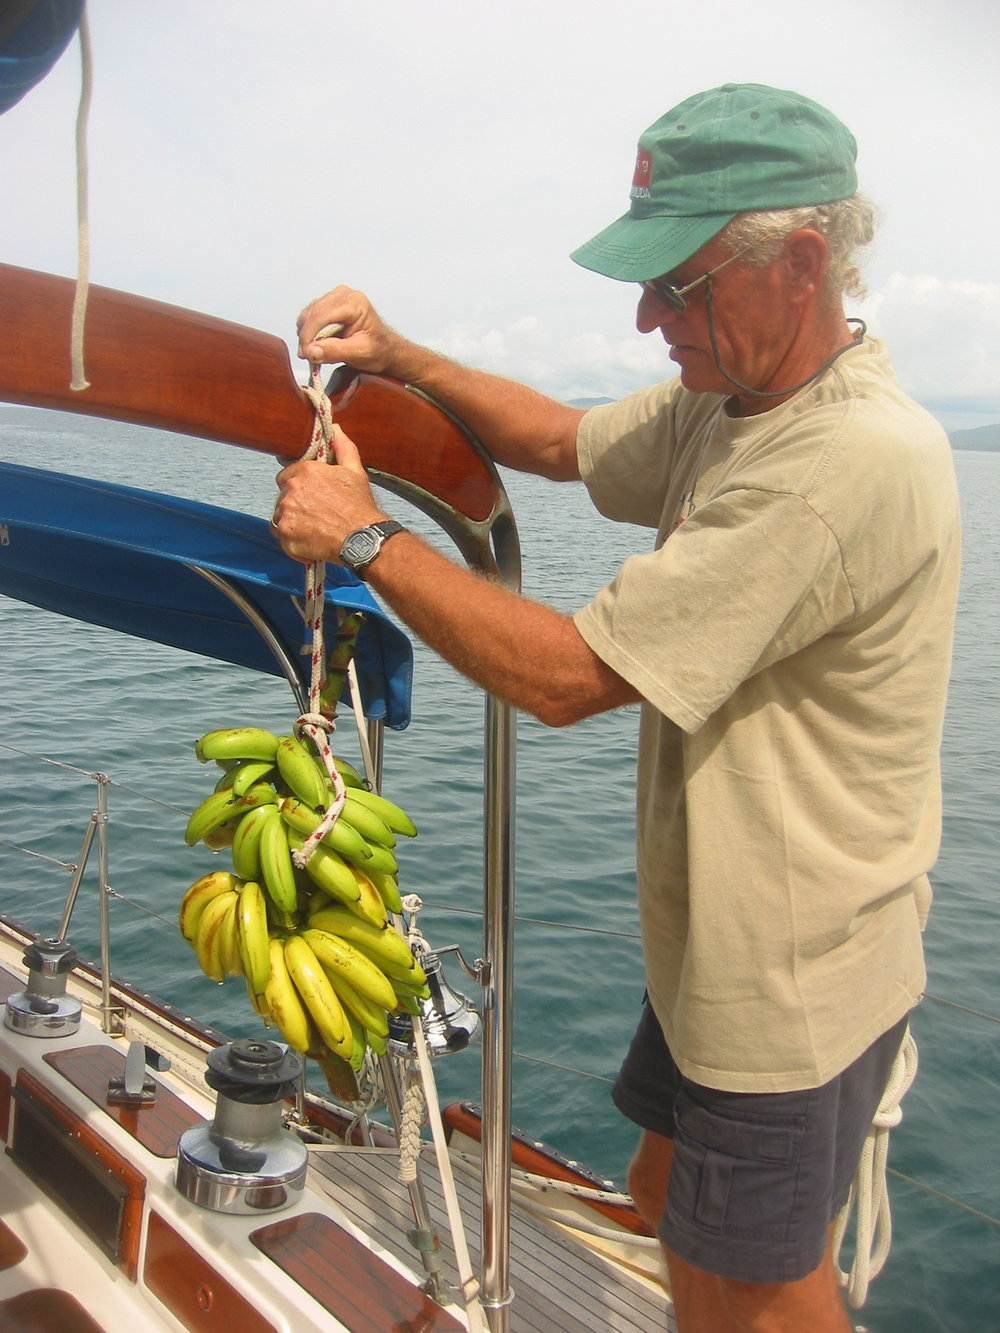 One of many hands of bananas we received as gifts from the islanders. This was a small one!